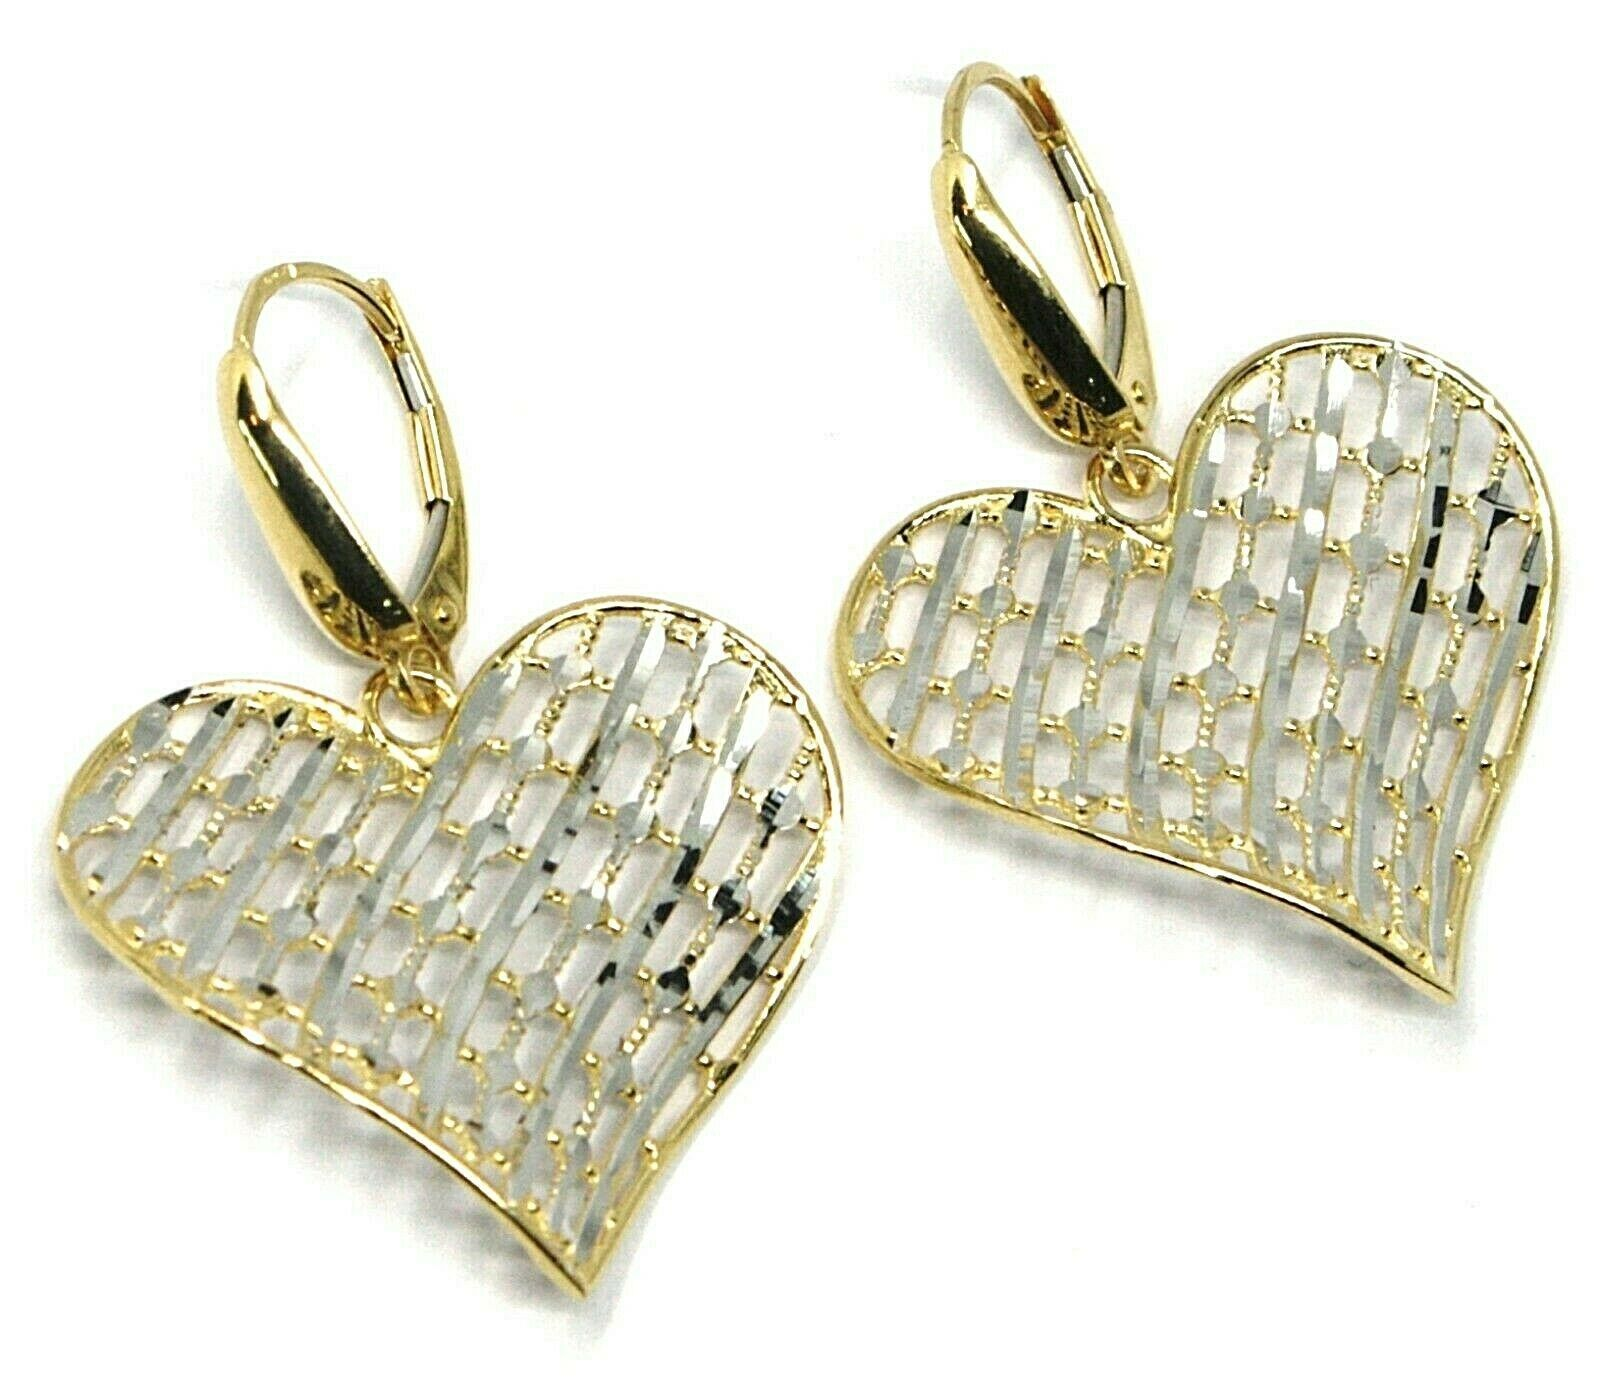 18K YELLOW WHITE GOLD PENDANT EARRINGS ONDULATE WORKED HEART, SHINY, STRIPED